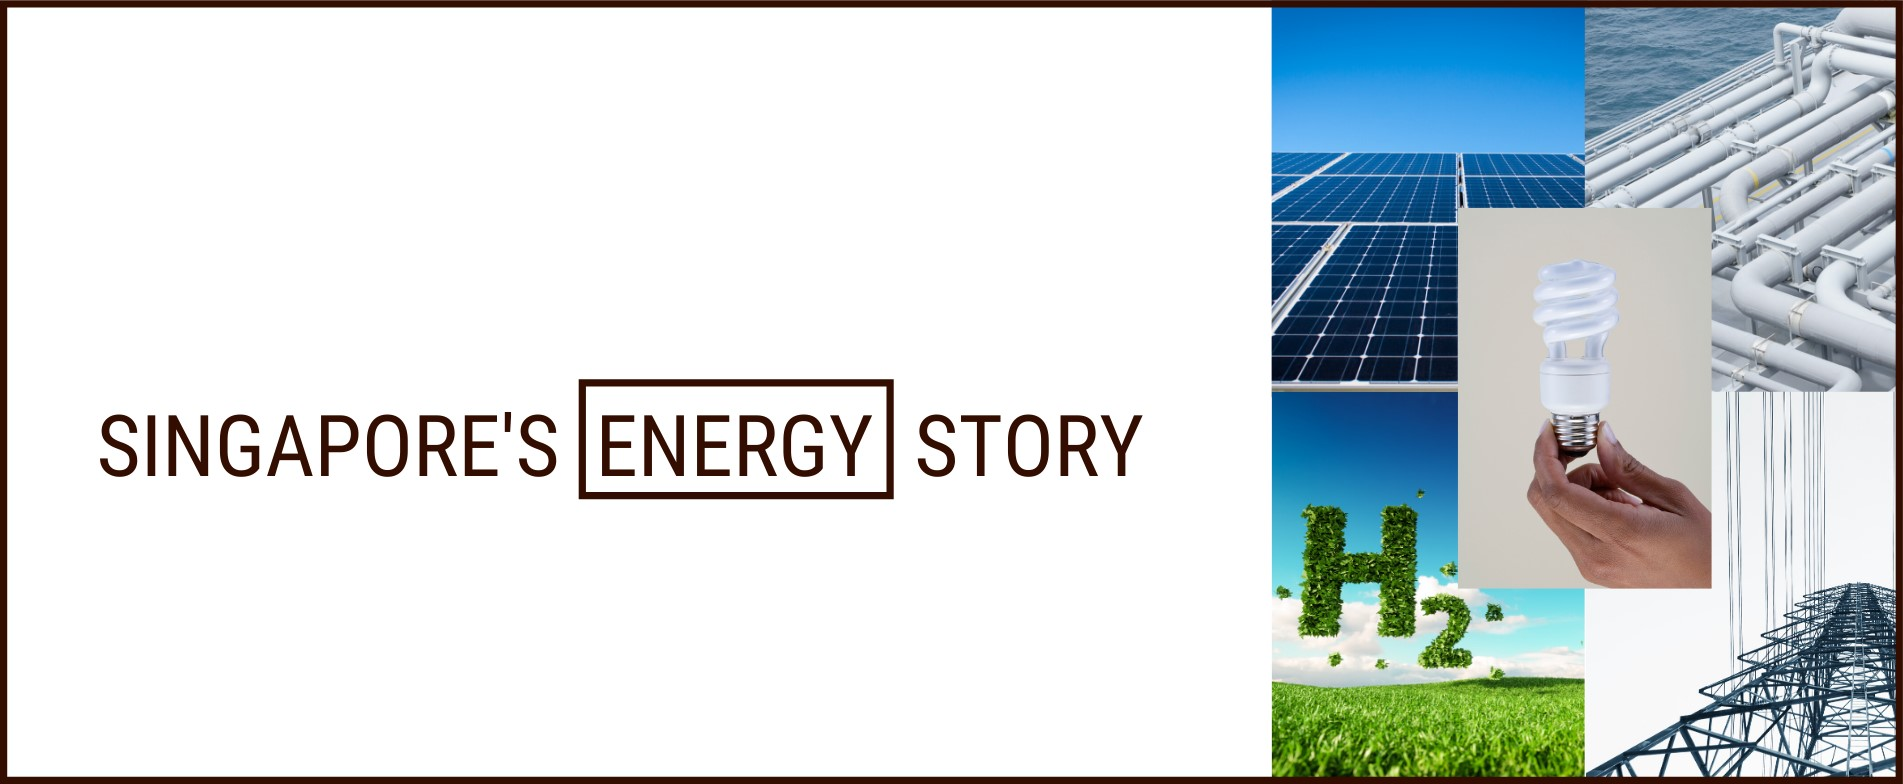 Our Energy Story - Energy Market Authority